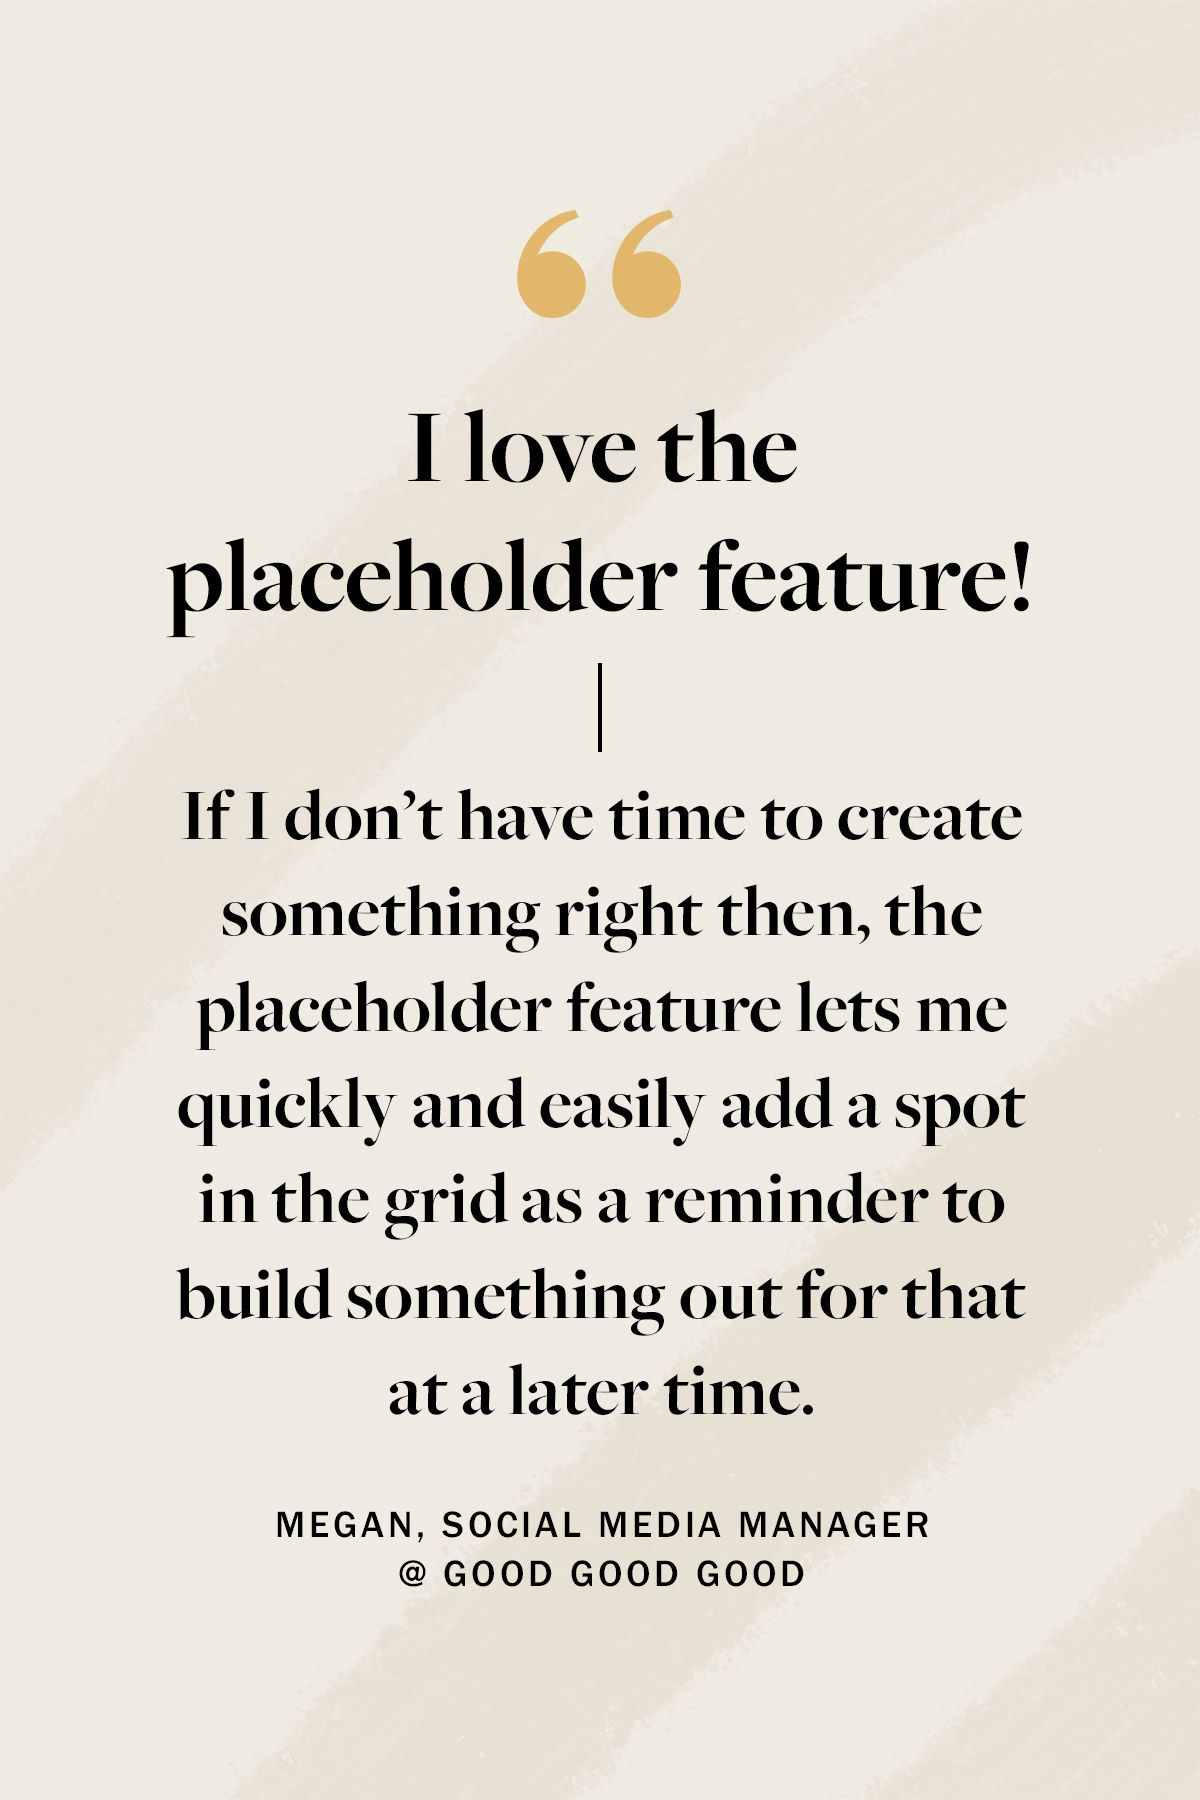 PLANOLY - Blog Post - Placeholder Feature - Image 4